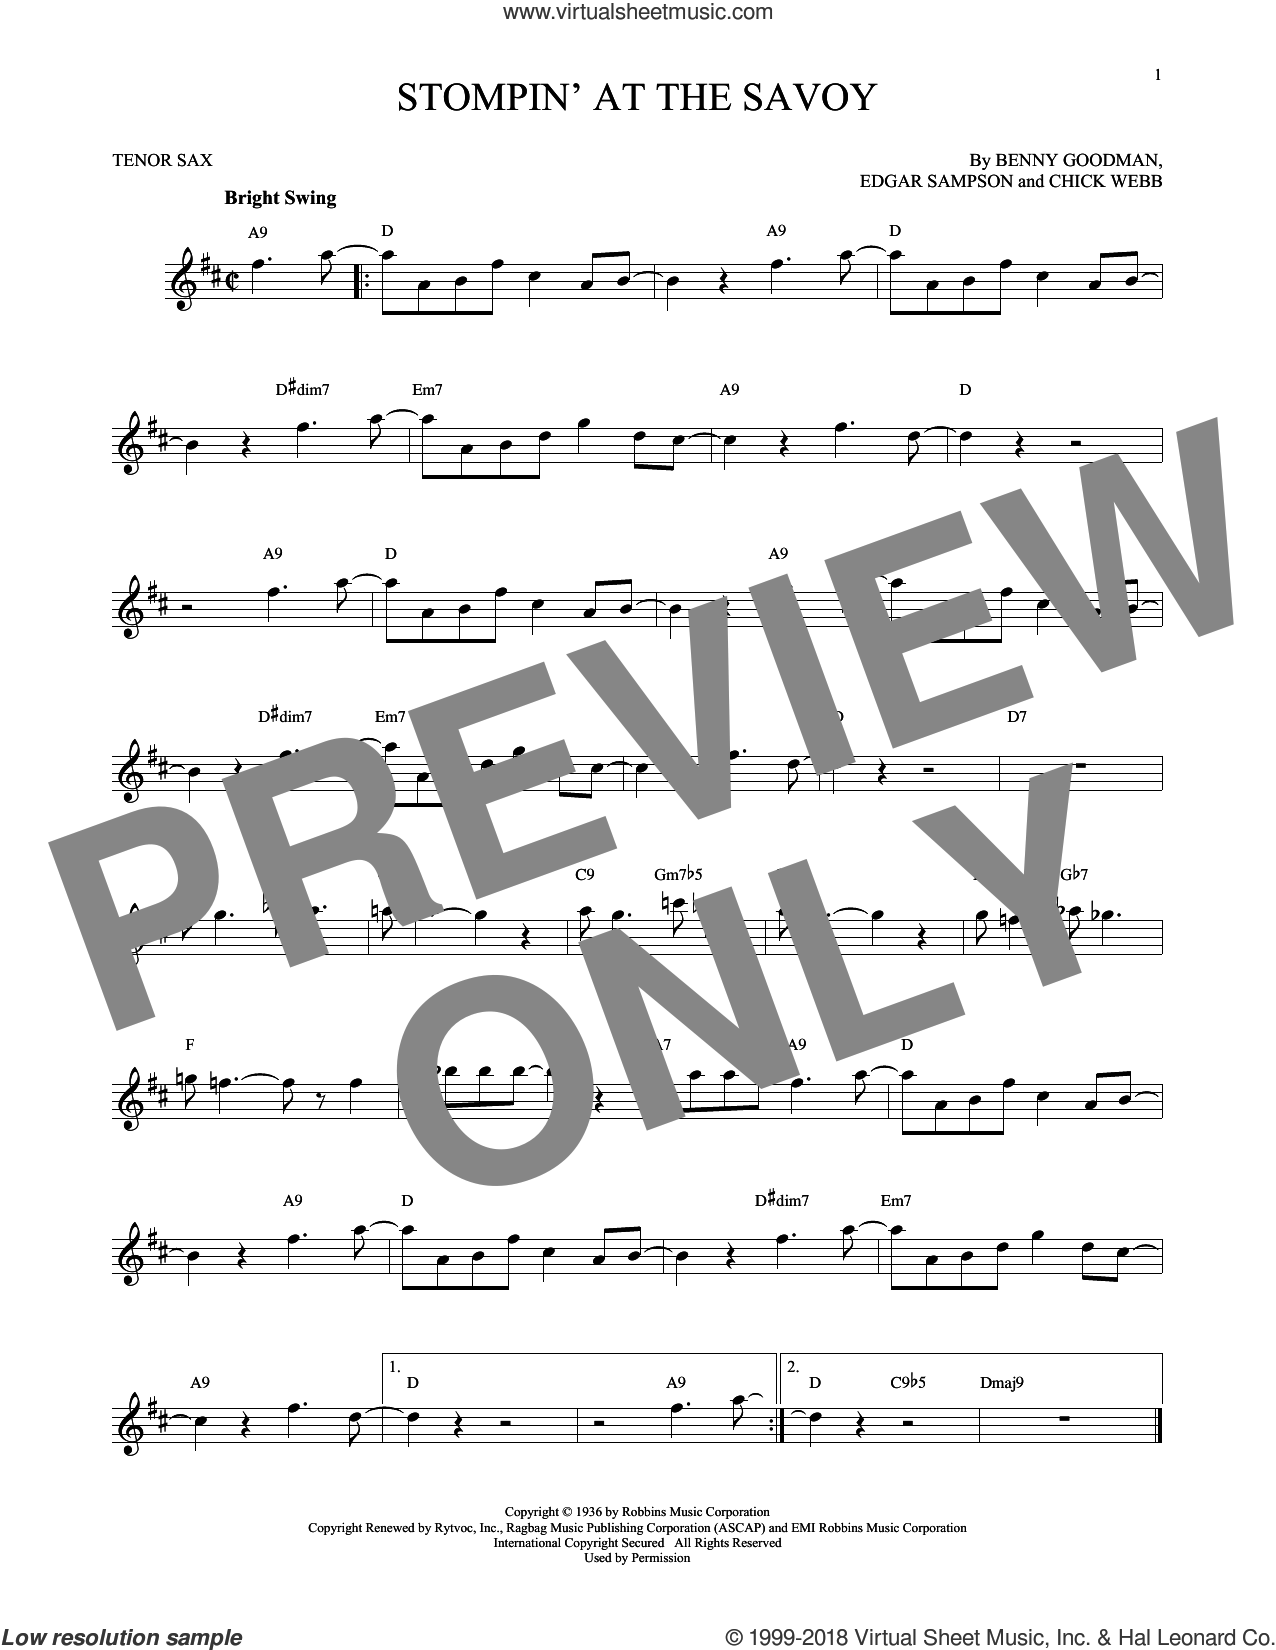 Stompin' At The Savoy sheet music for tenor saxophone solo by Benny Goodman, Andy Razaf, Chick Webb and Edgar Sampson, intermediate skill level